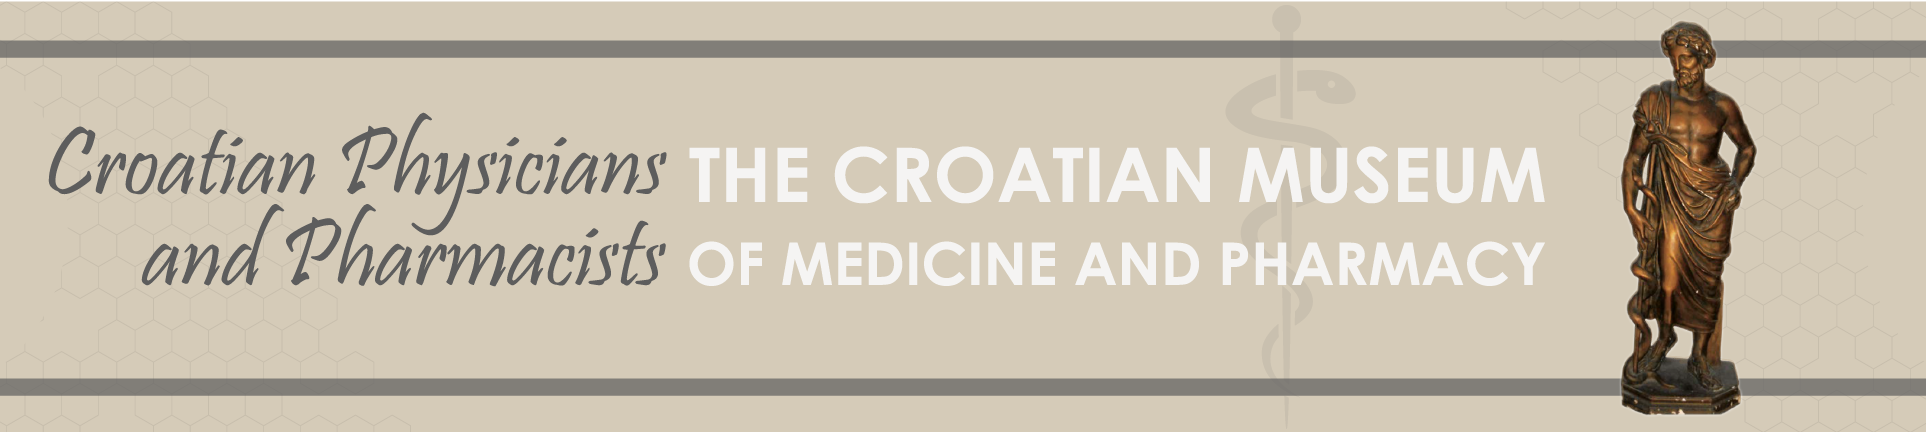 The Croatian Museum of Medicine and Pharmacy - Physicians and Pharmacists